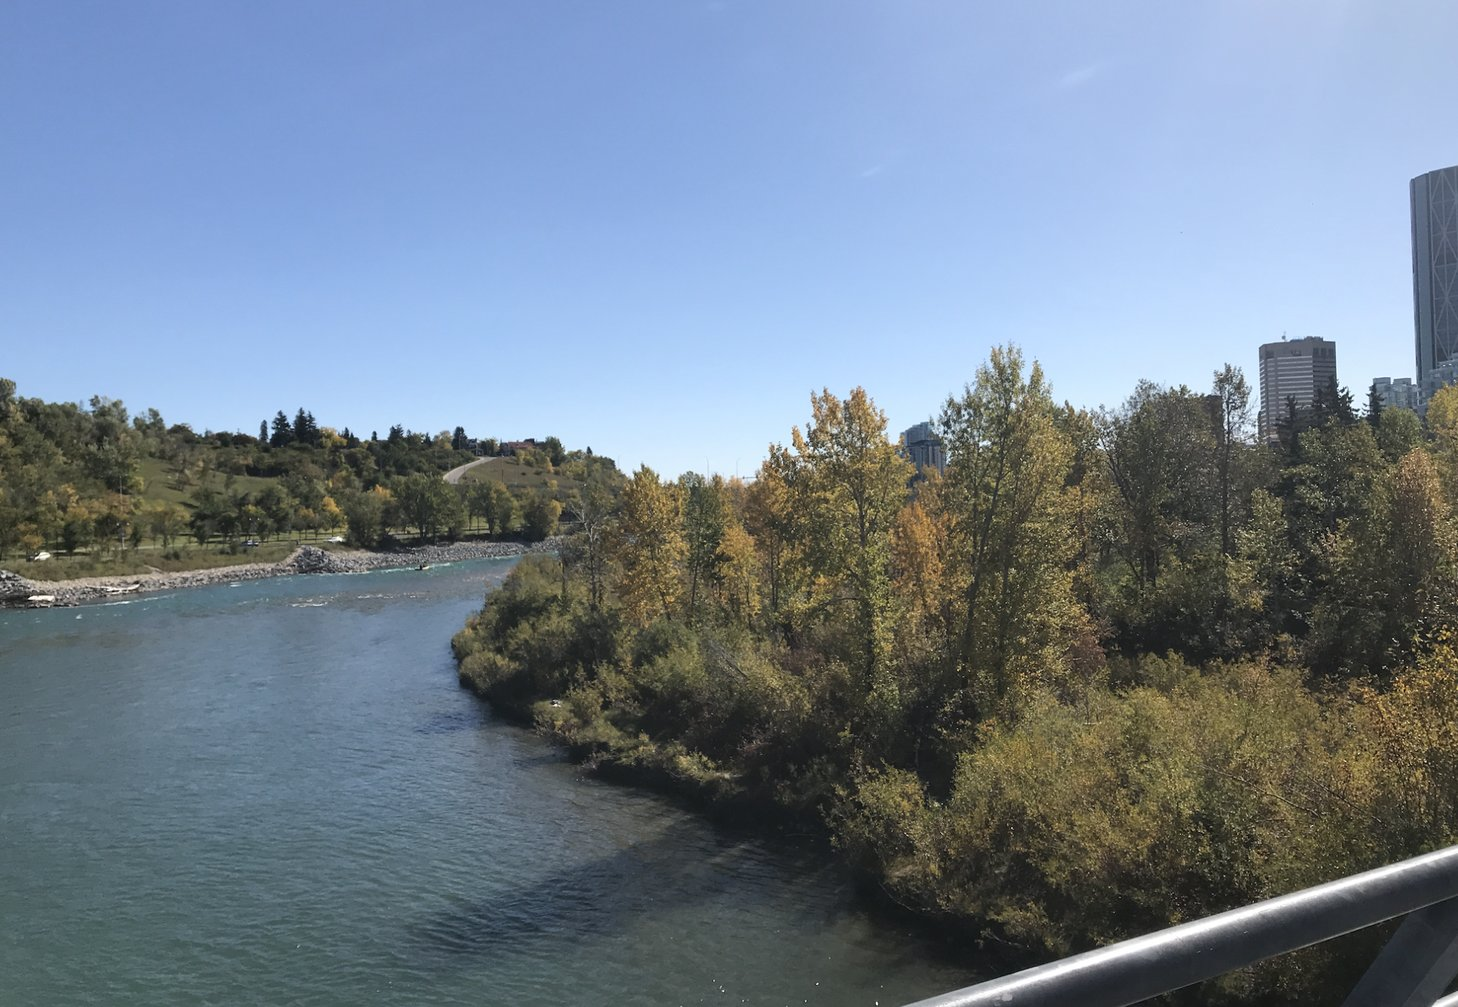 Calgary Bow River in the autumn